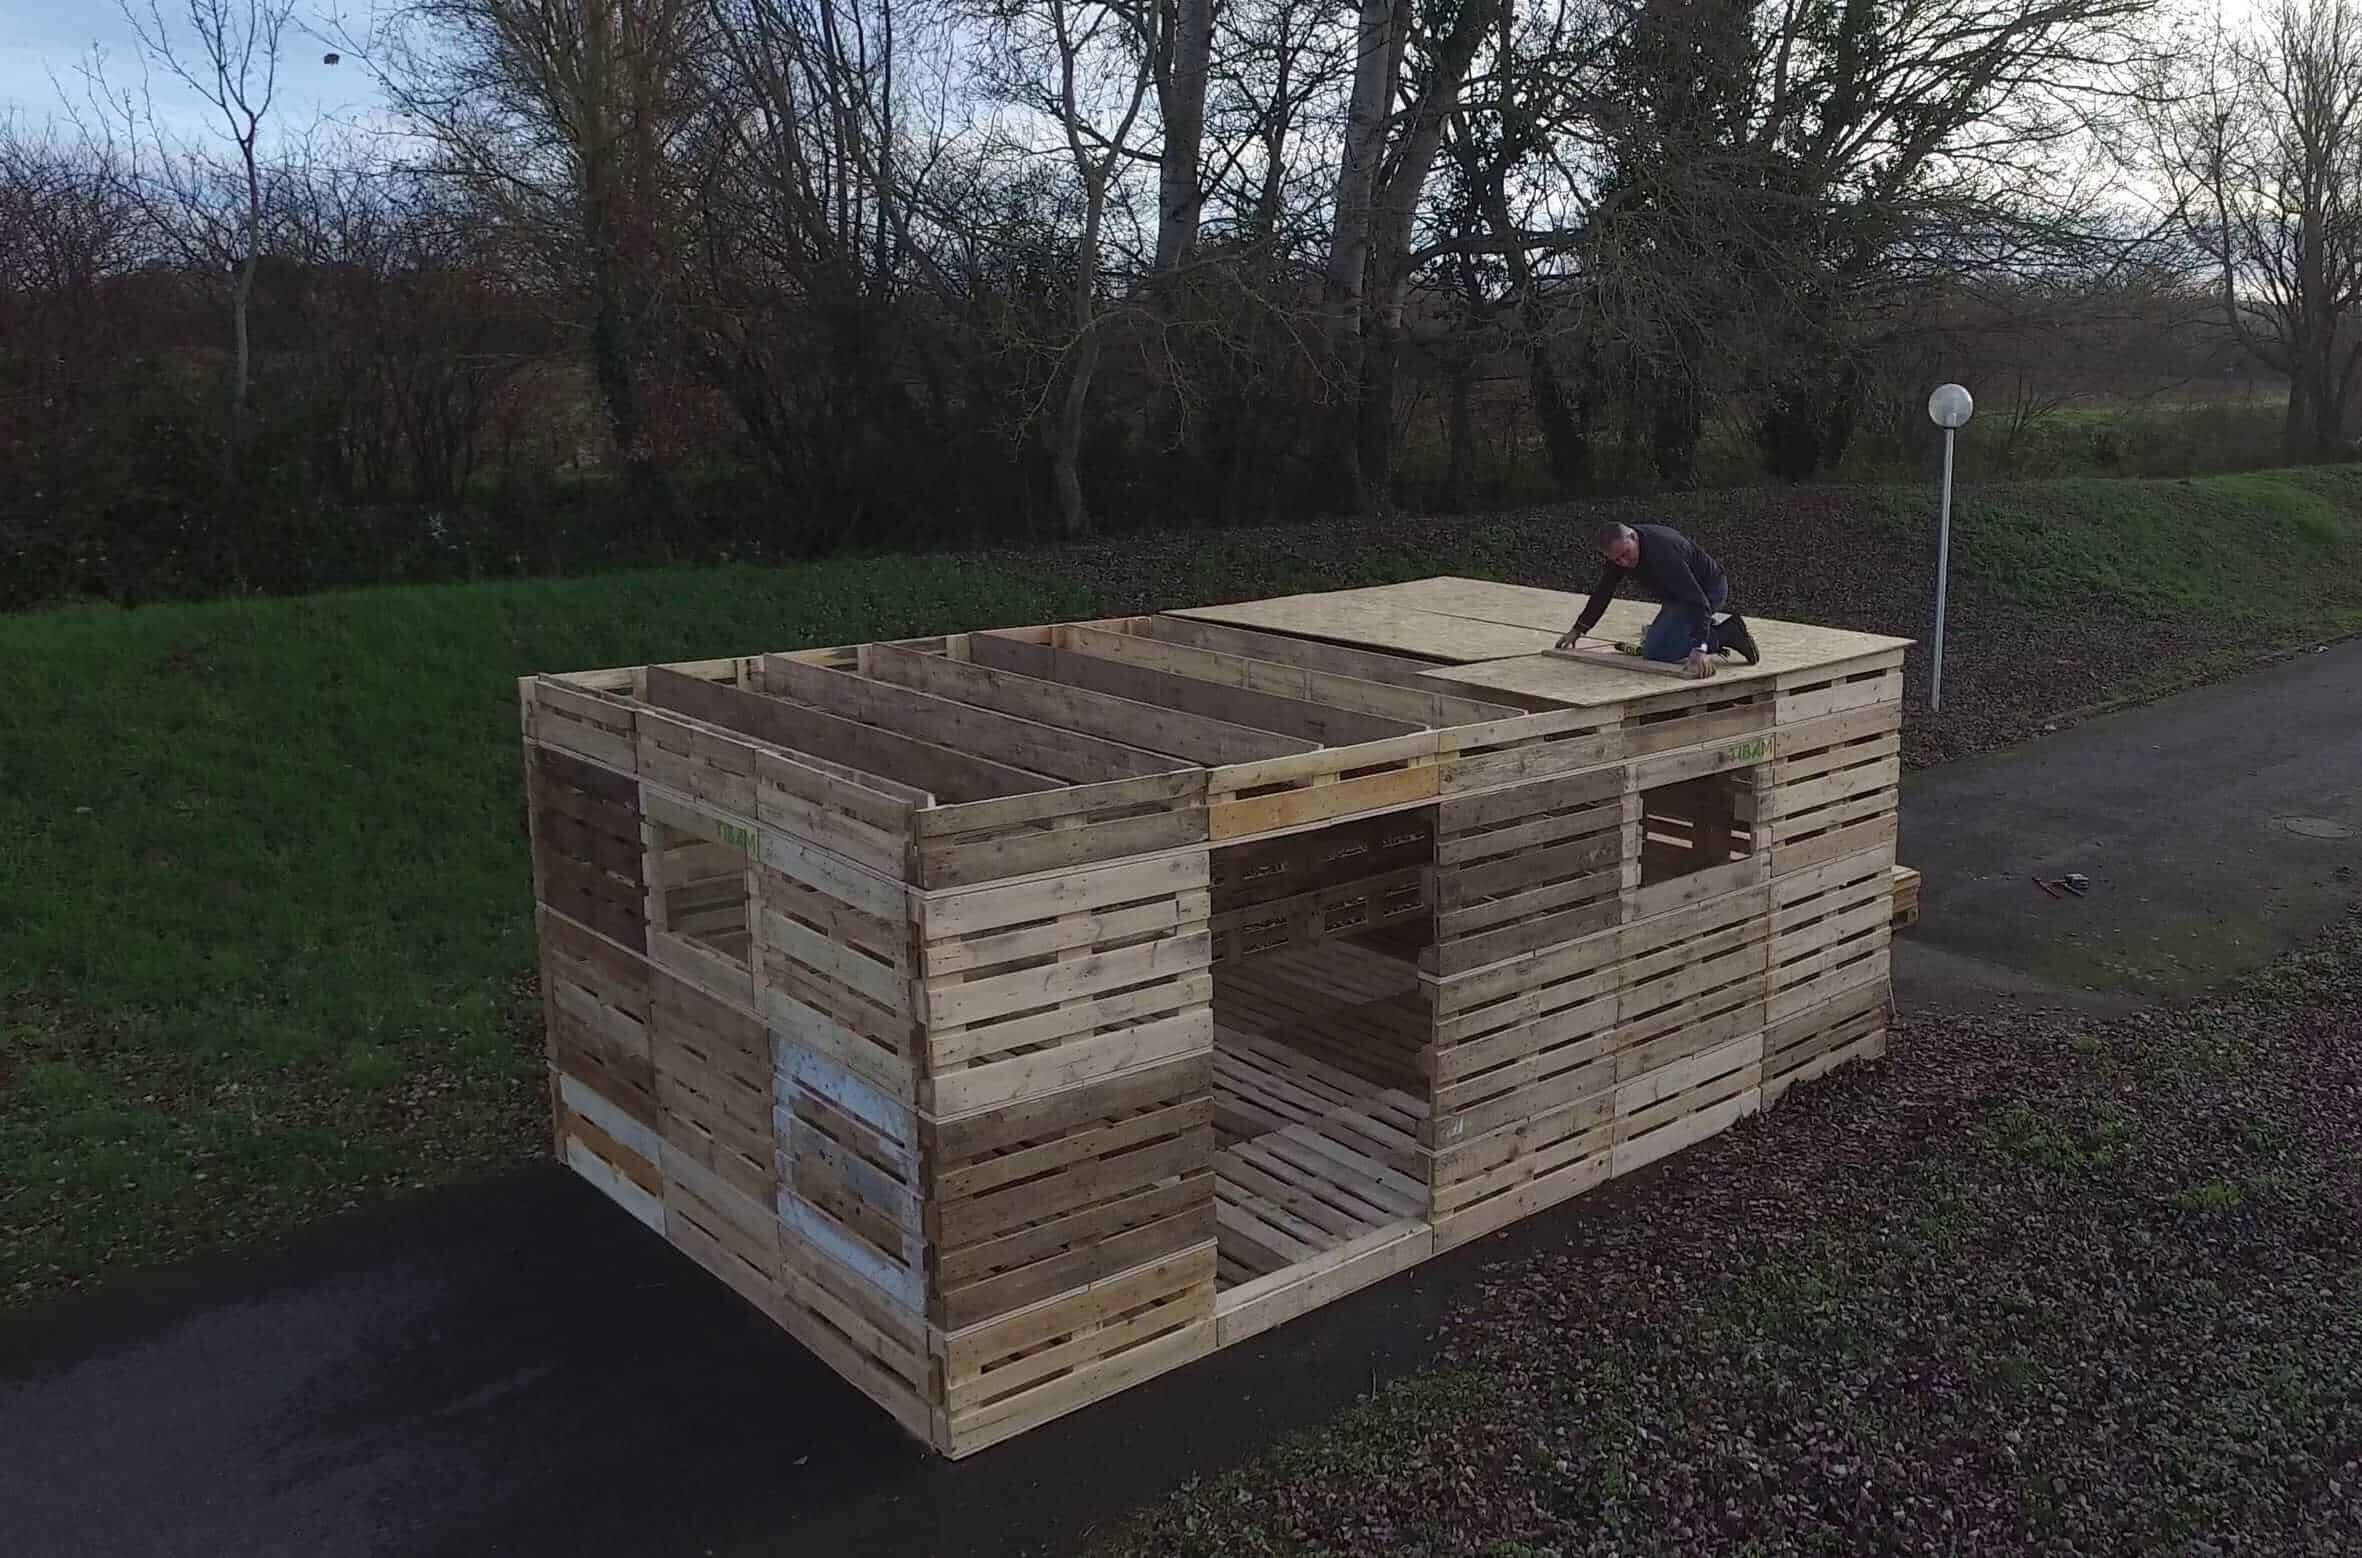 1001pallets.com-what-if-you-could-build-a-shelter-from-pallets-in-one-day.jpg